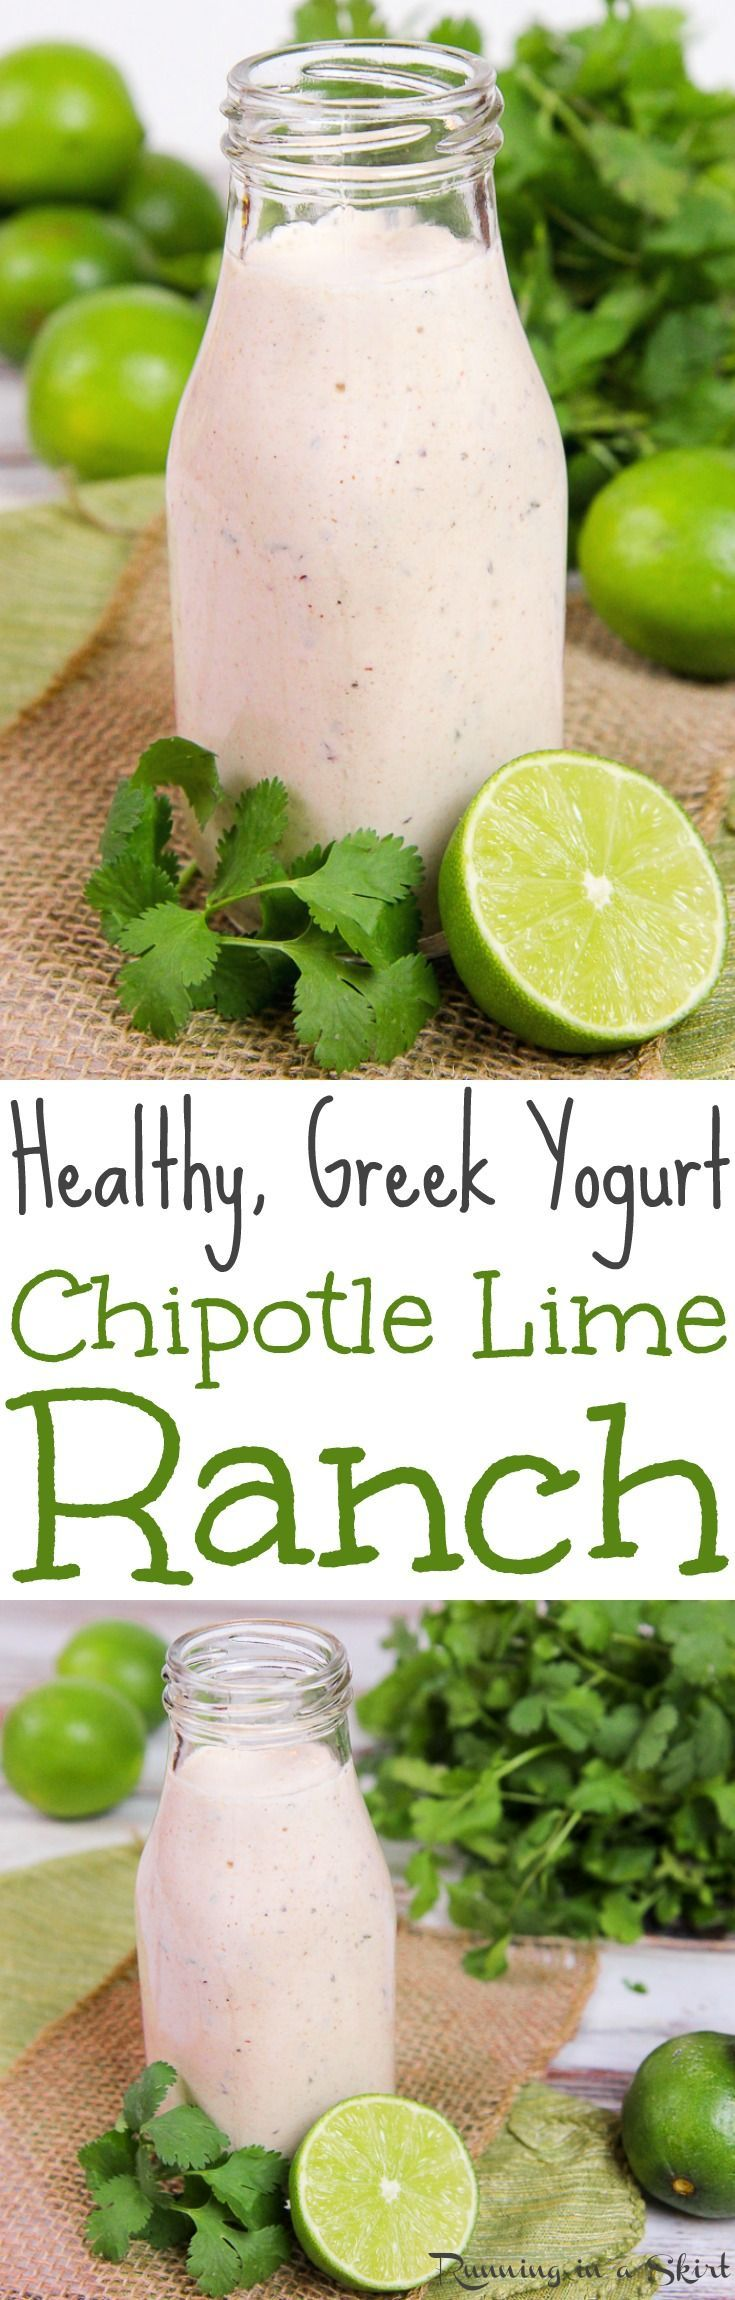 Healthy Chipotle Lime Greek Yogurt Ranch salad dressing recipe. The best easy, homemade sauce or dip for salads, burrito bowls, pasta or tacos. Gluten free, vegetarian, & low carb. / Running in a Skirt